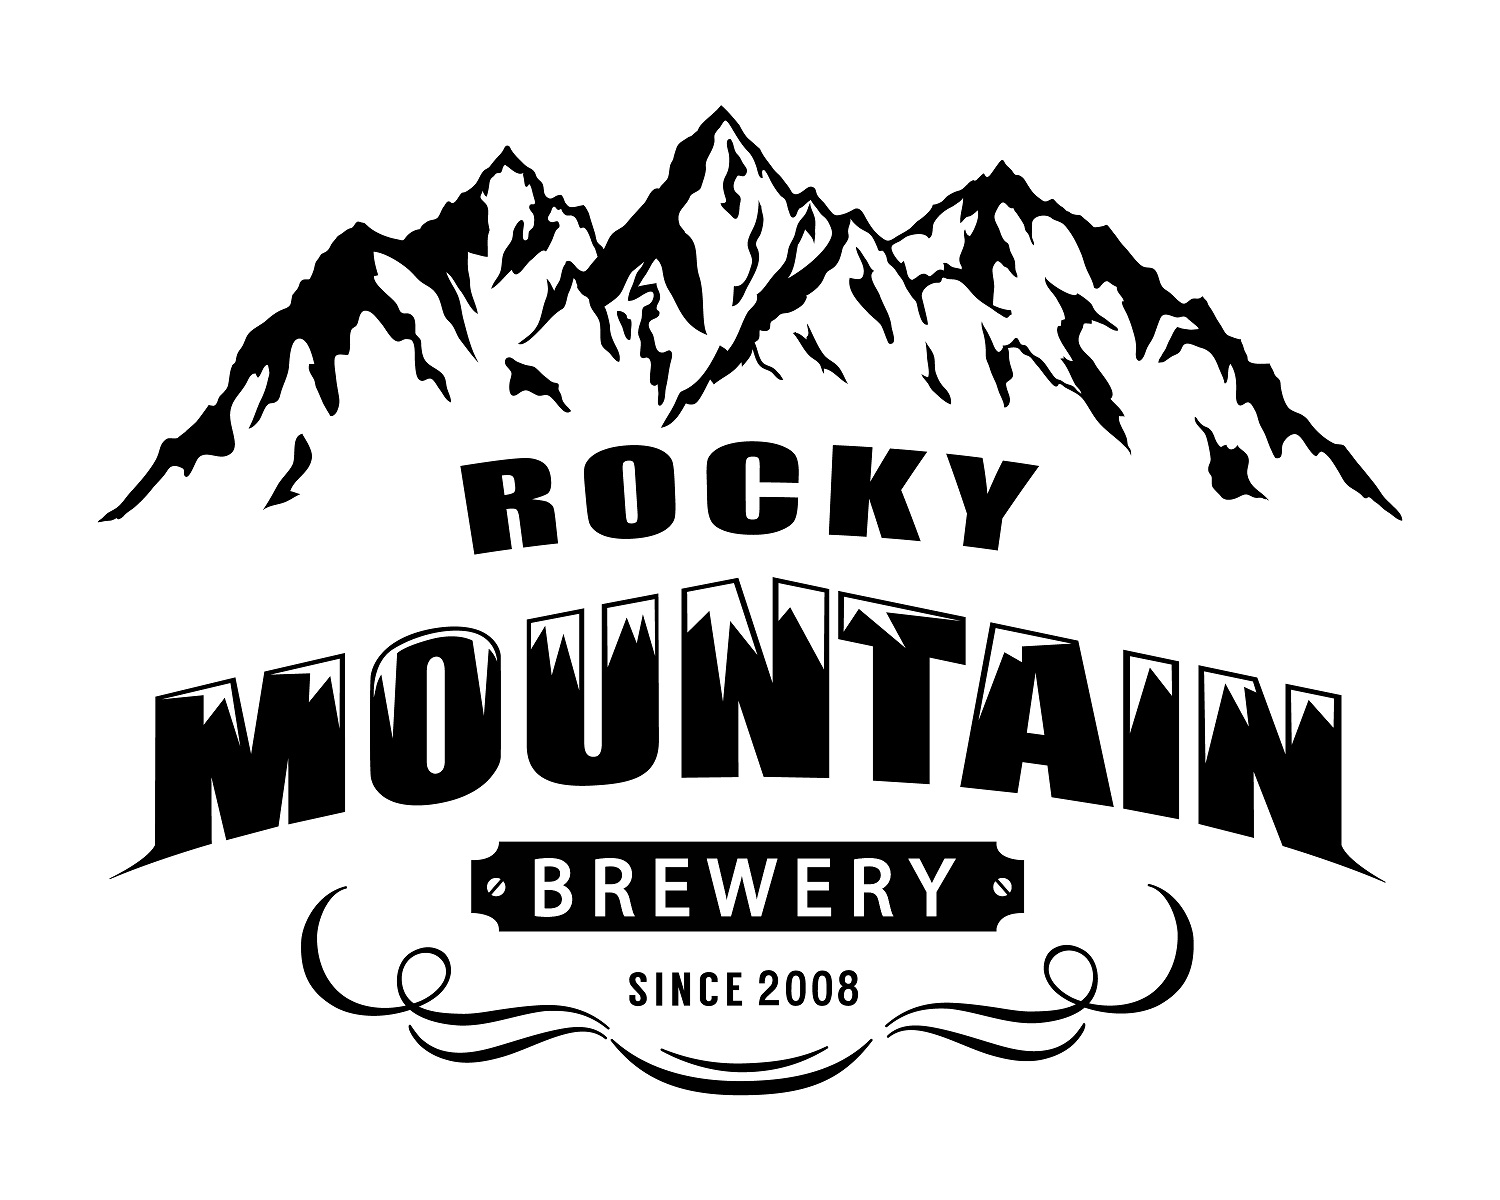 1st Annual Rocky Mountain Brewery Anniversary Bash